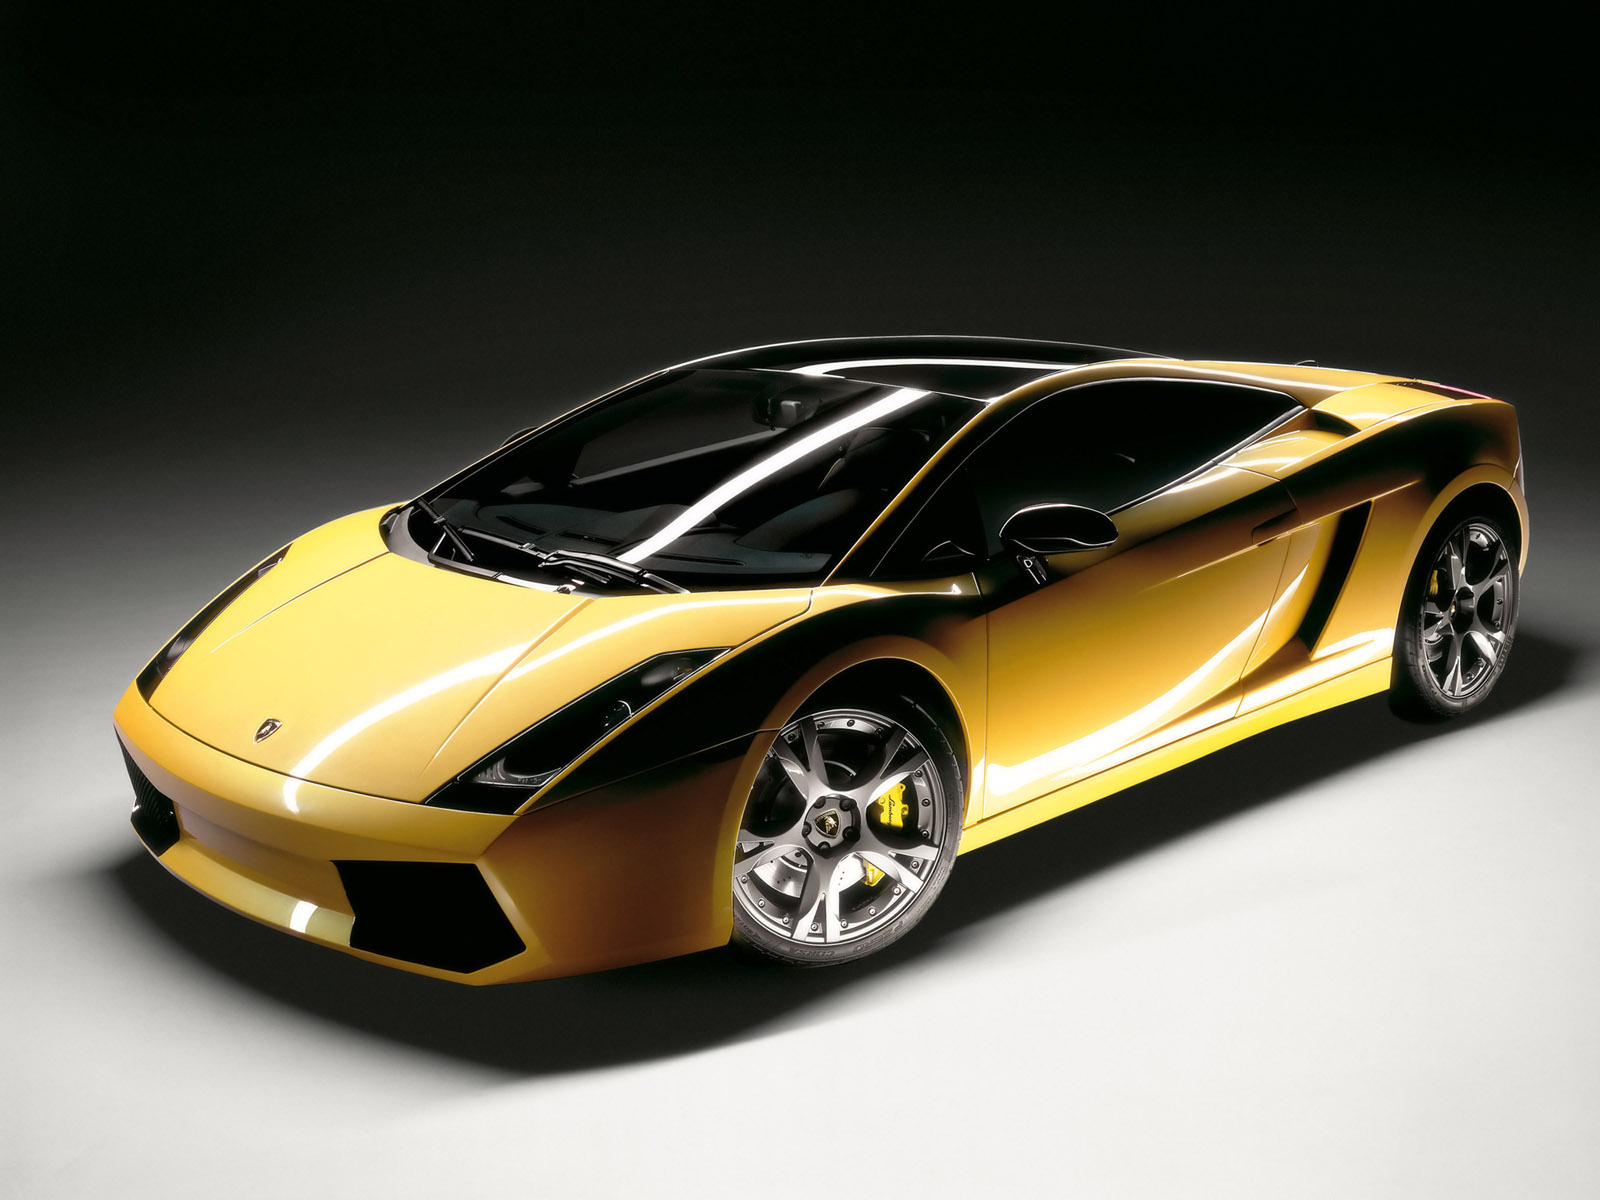 COOL IMAGES: Lamborghini Gallardo Wallpapers